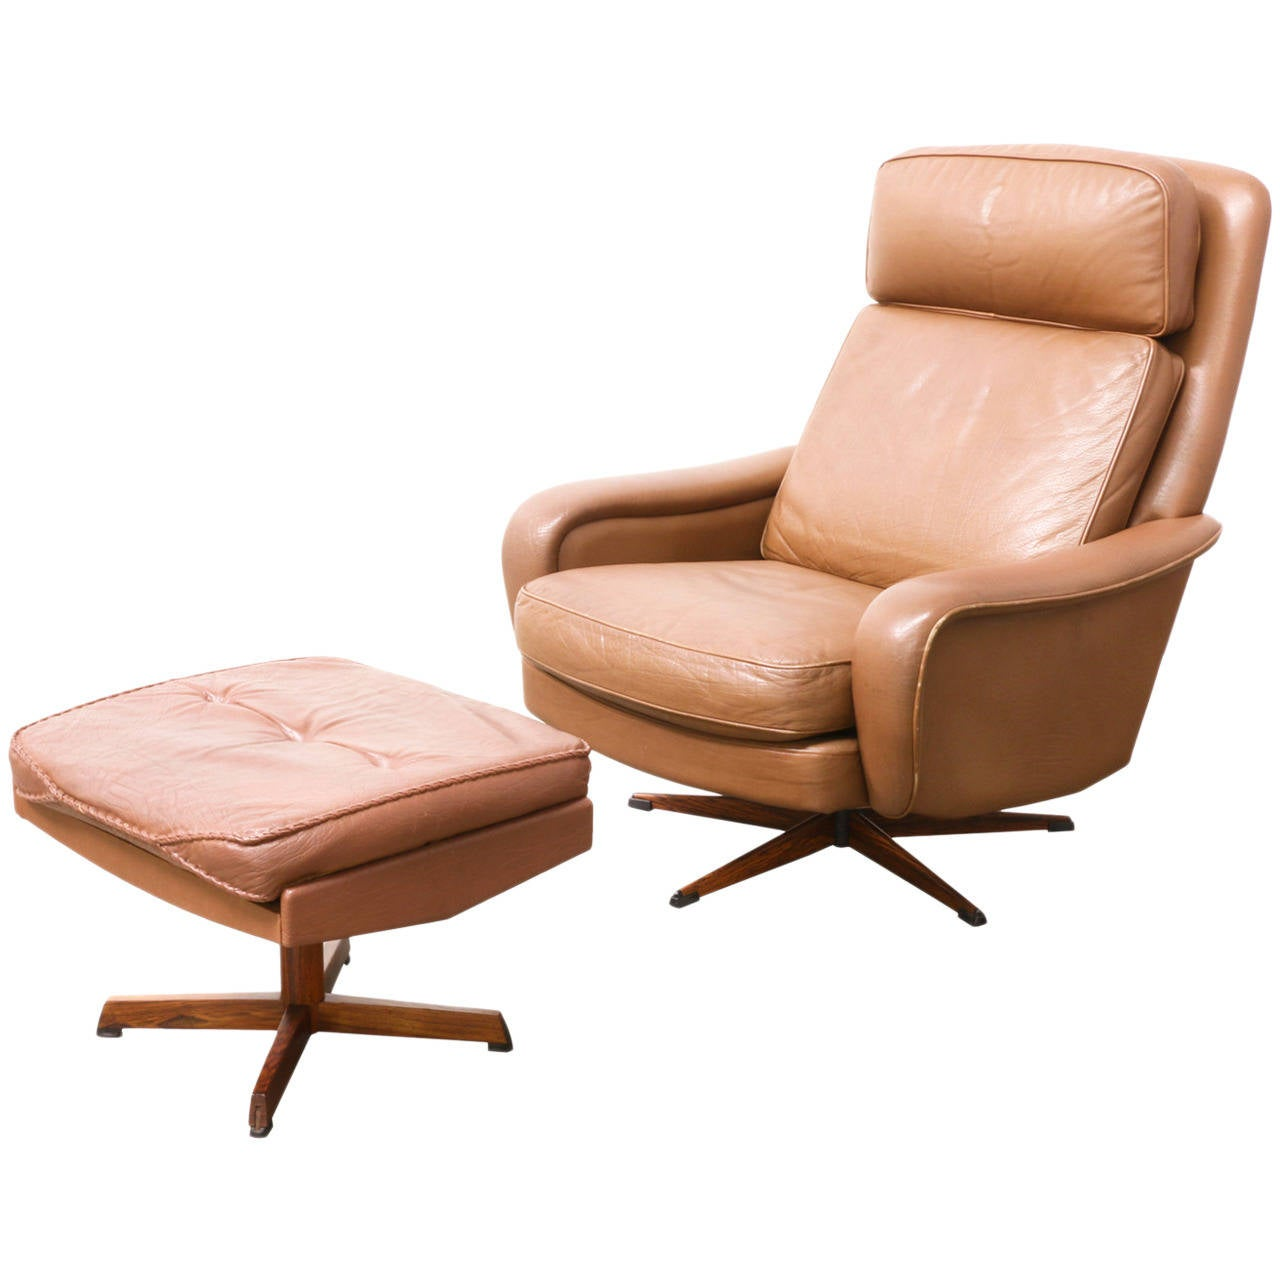 Danish modern leather lounge chair with ottoman at 1stdibs for Contemporary lounge furniture